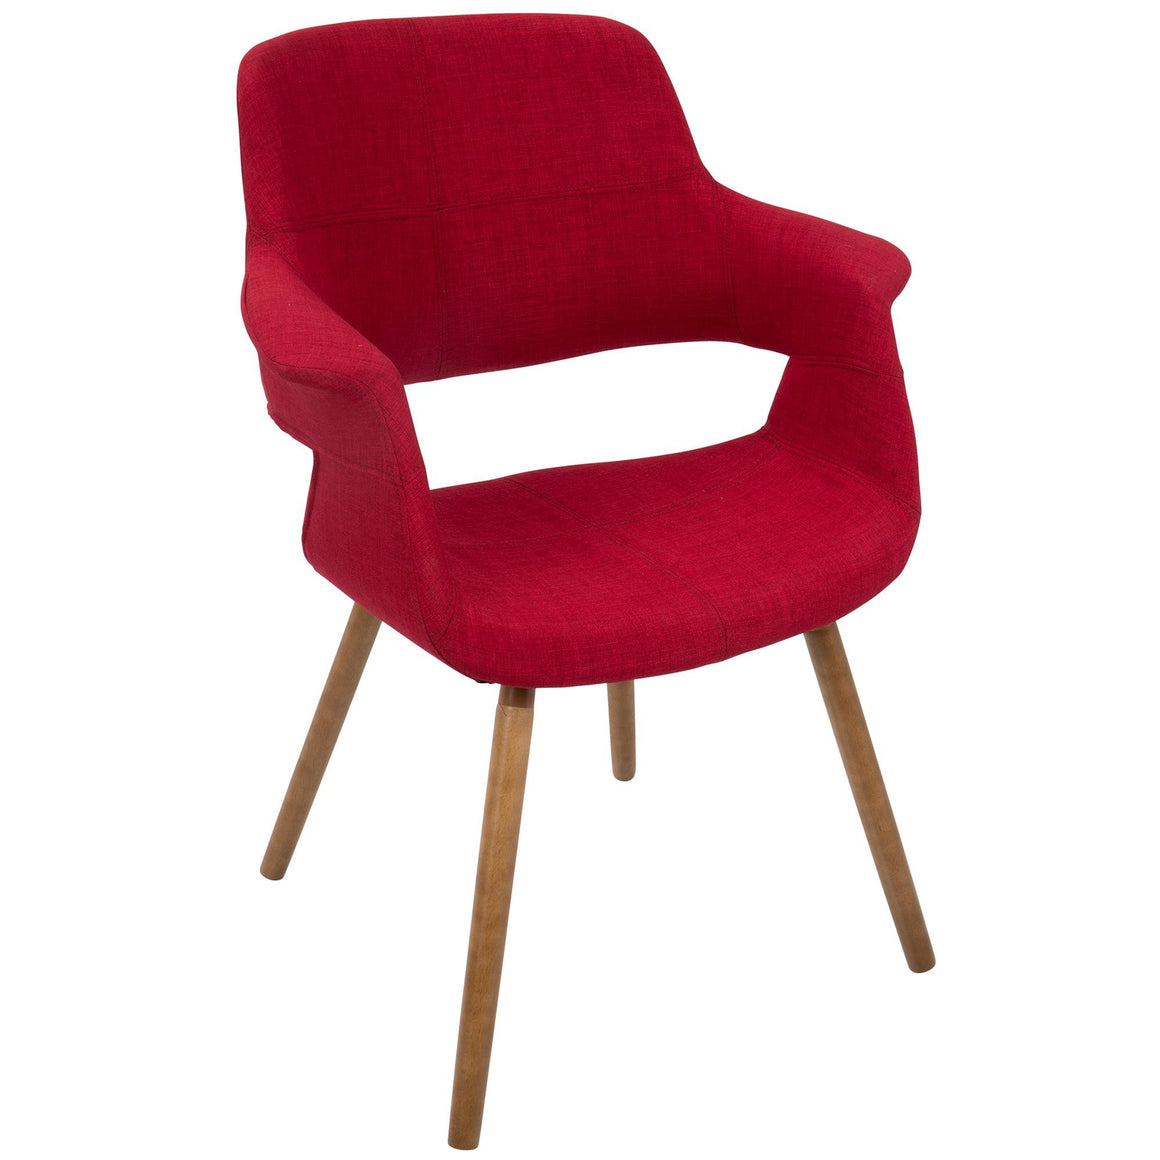 Vintage Flair Mid-Century Modern Chair in Red by LumiSource